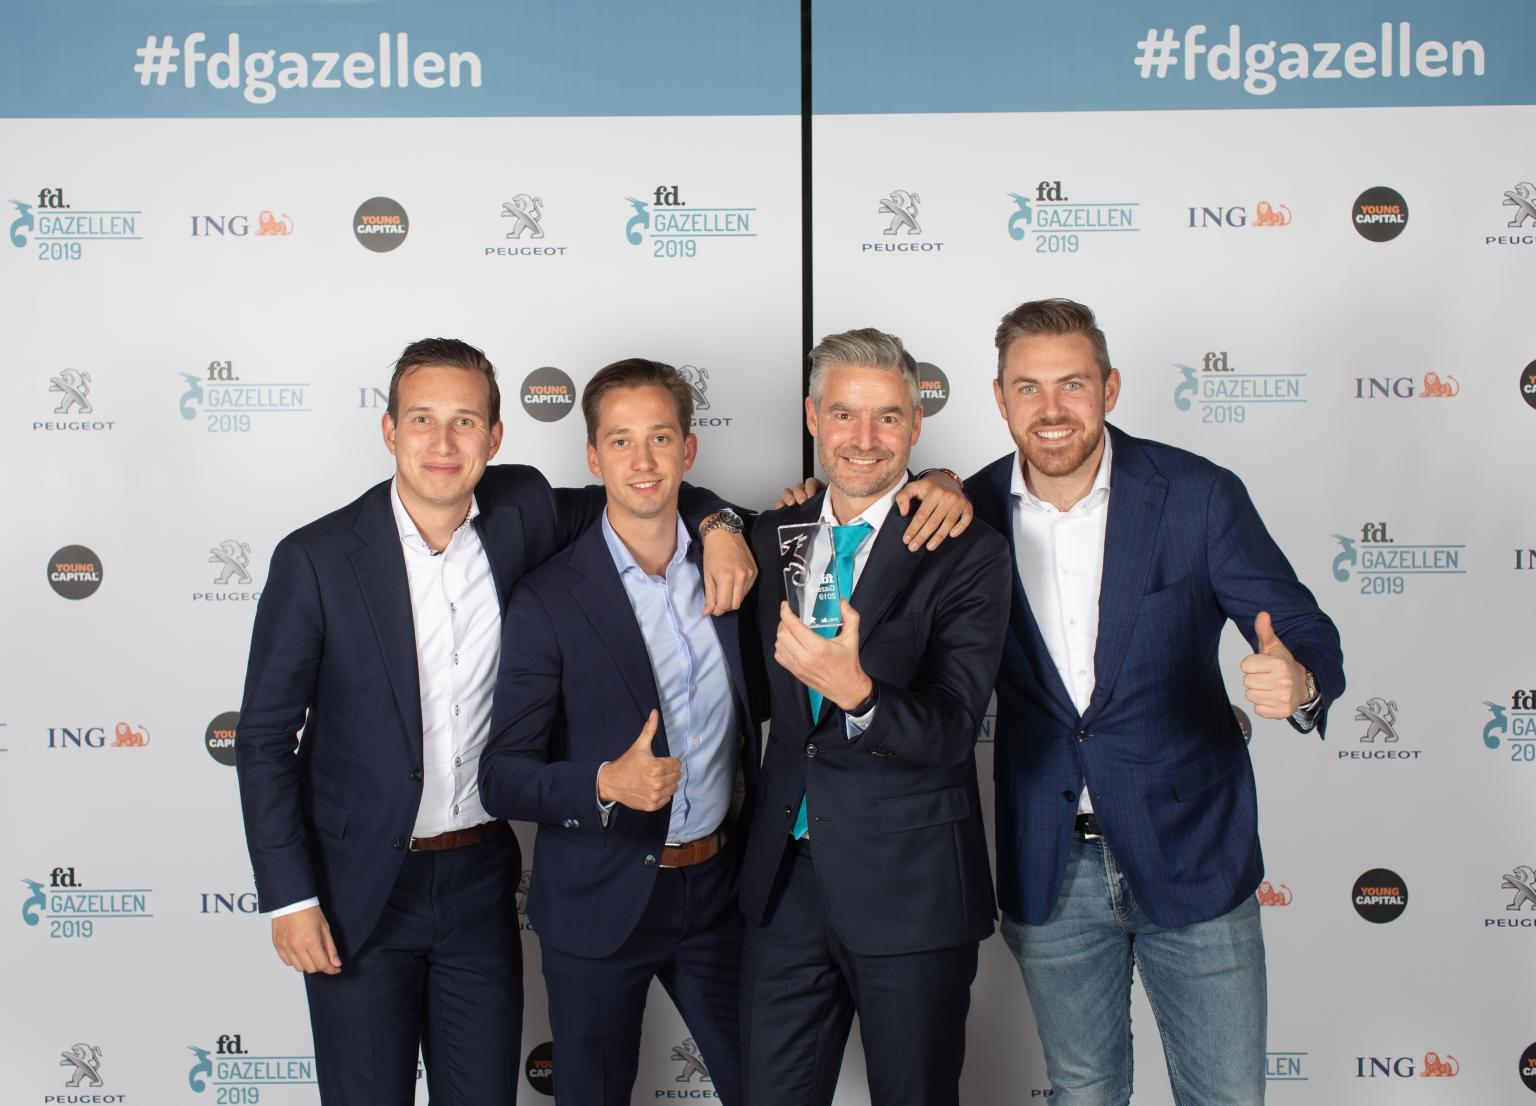 IPKW'ers Luminis en Kracht Recruitment winnen FD Gazellen award 2019